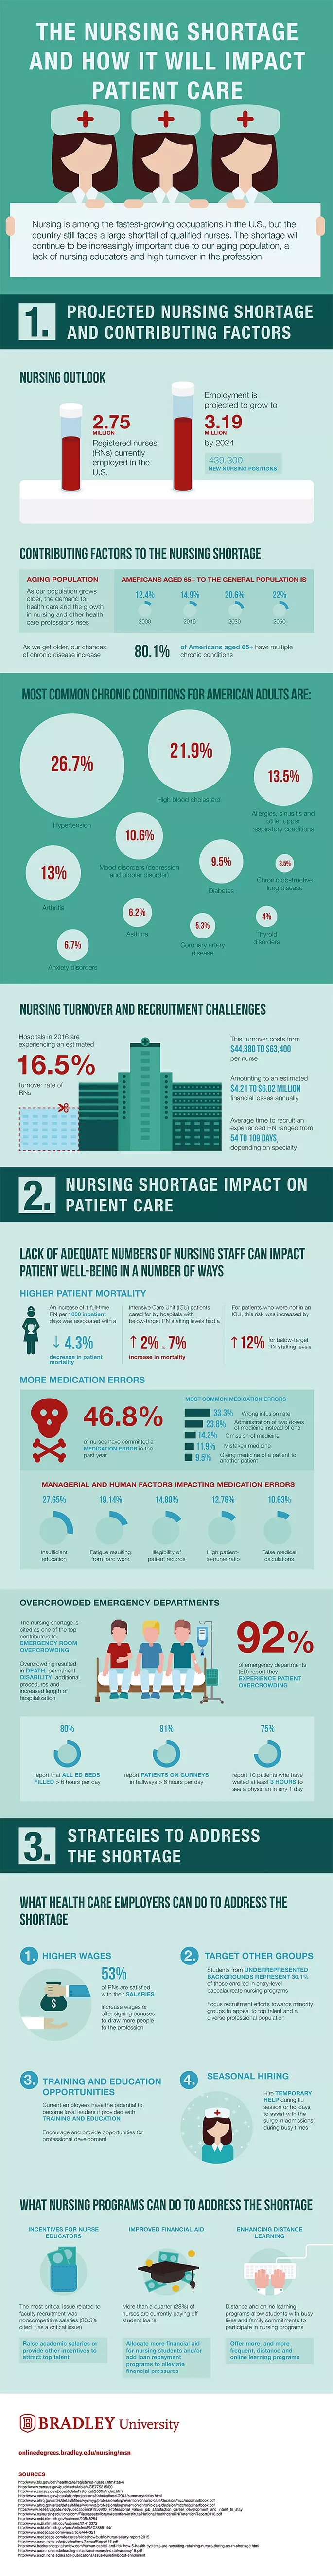 The Nursing Shortage and How It Will Impact Patient Care